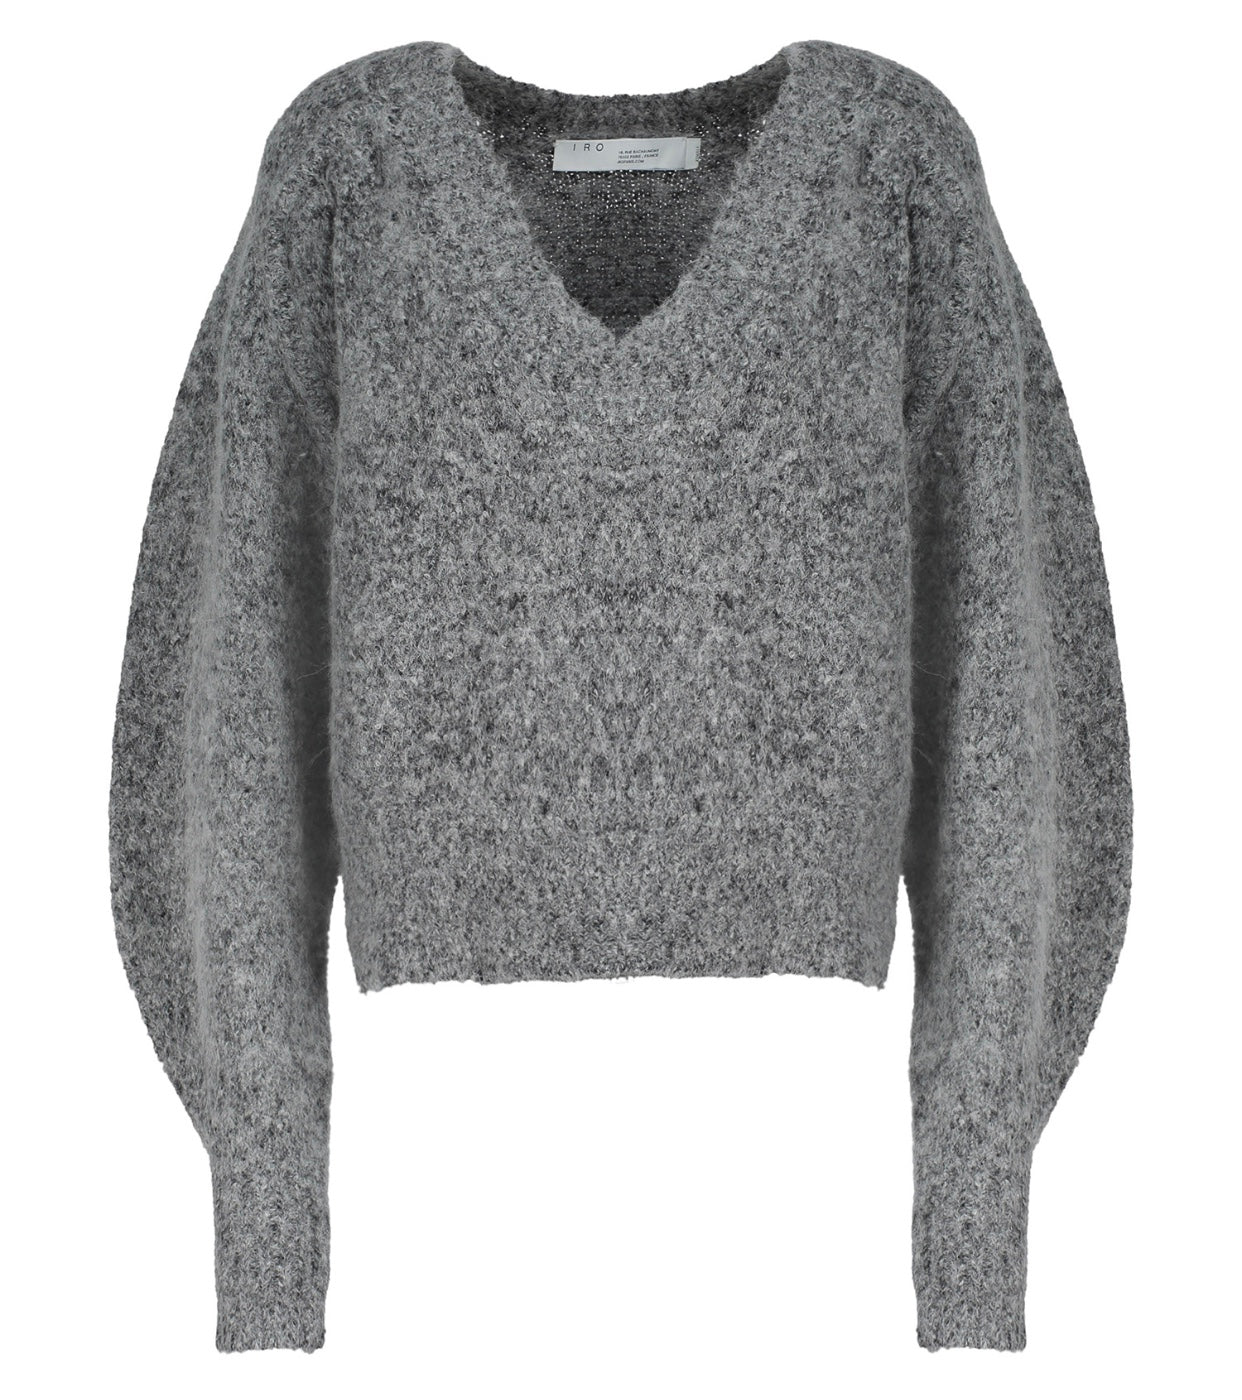 IRO | Wildy Sweater - Dark grey